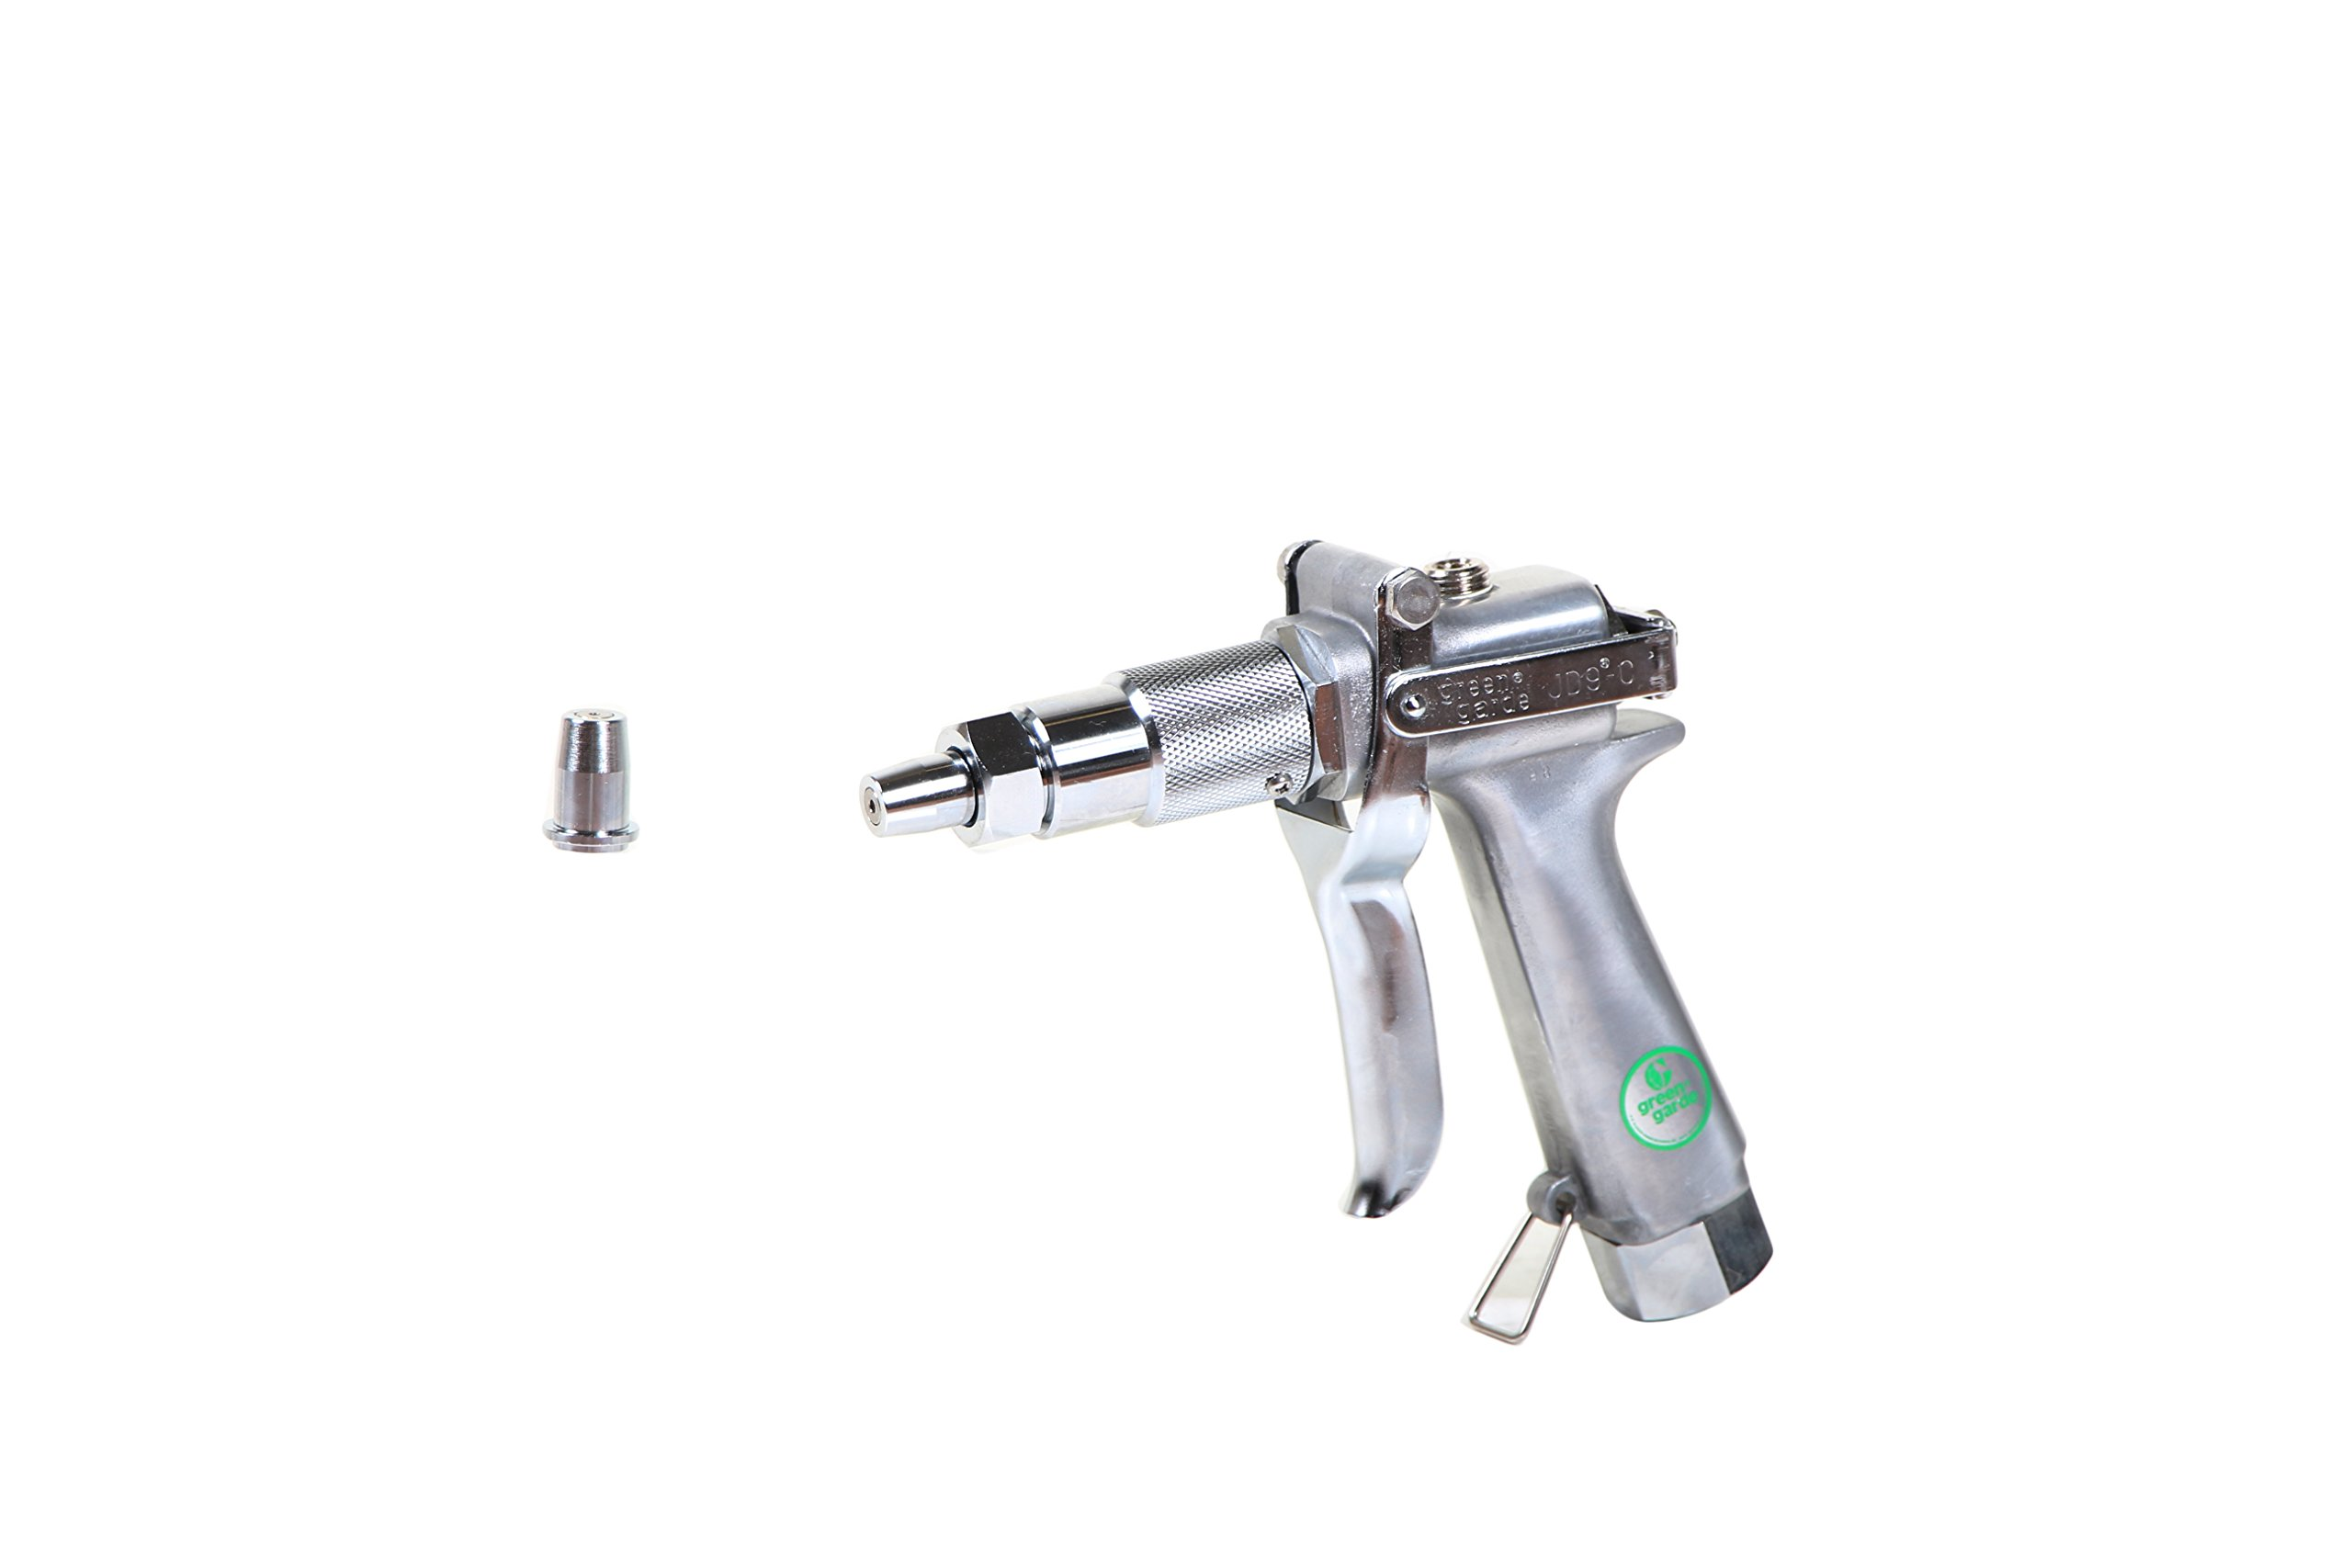 JD9-C Green Garde Spray Gun by Hudson - JD9C with Large Nozzle